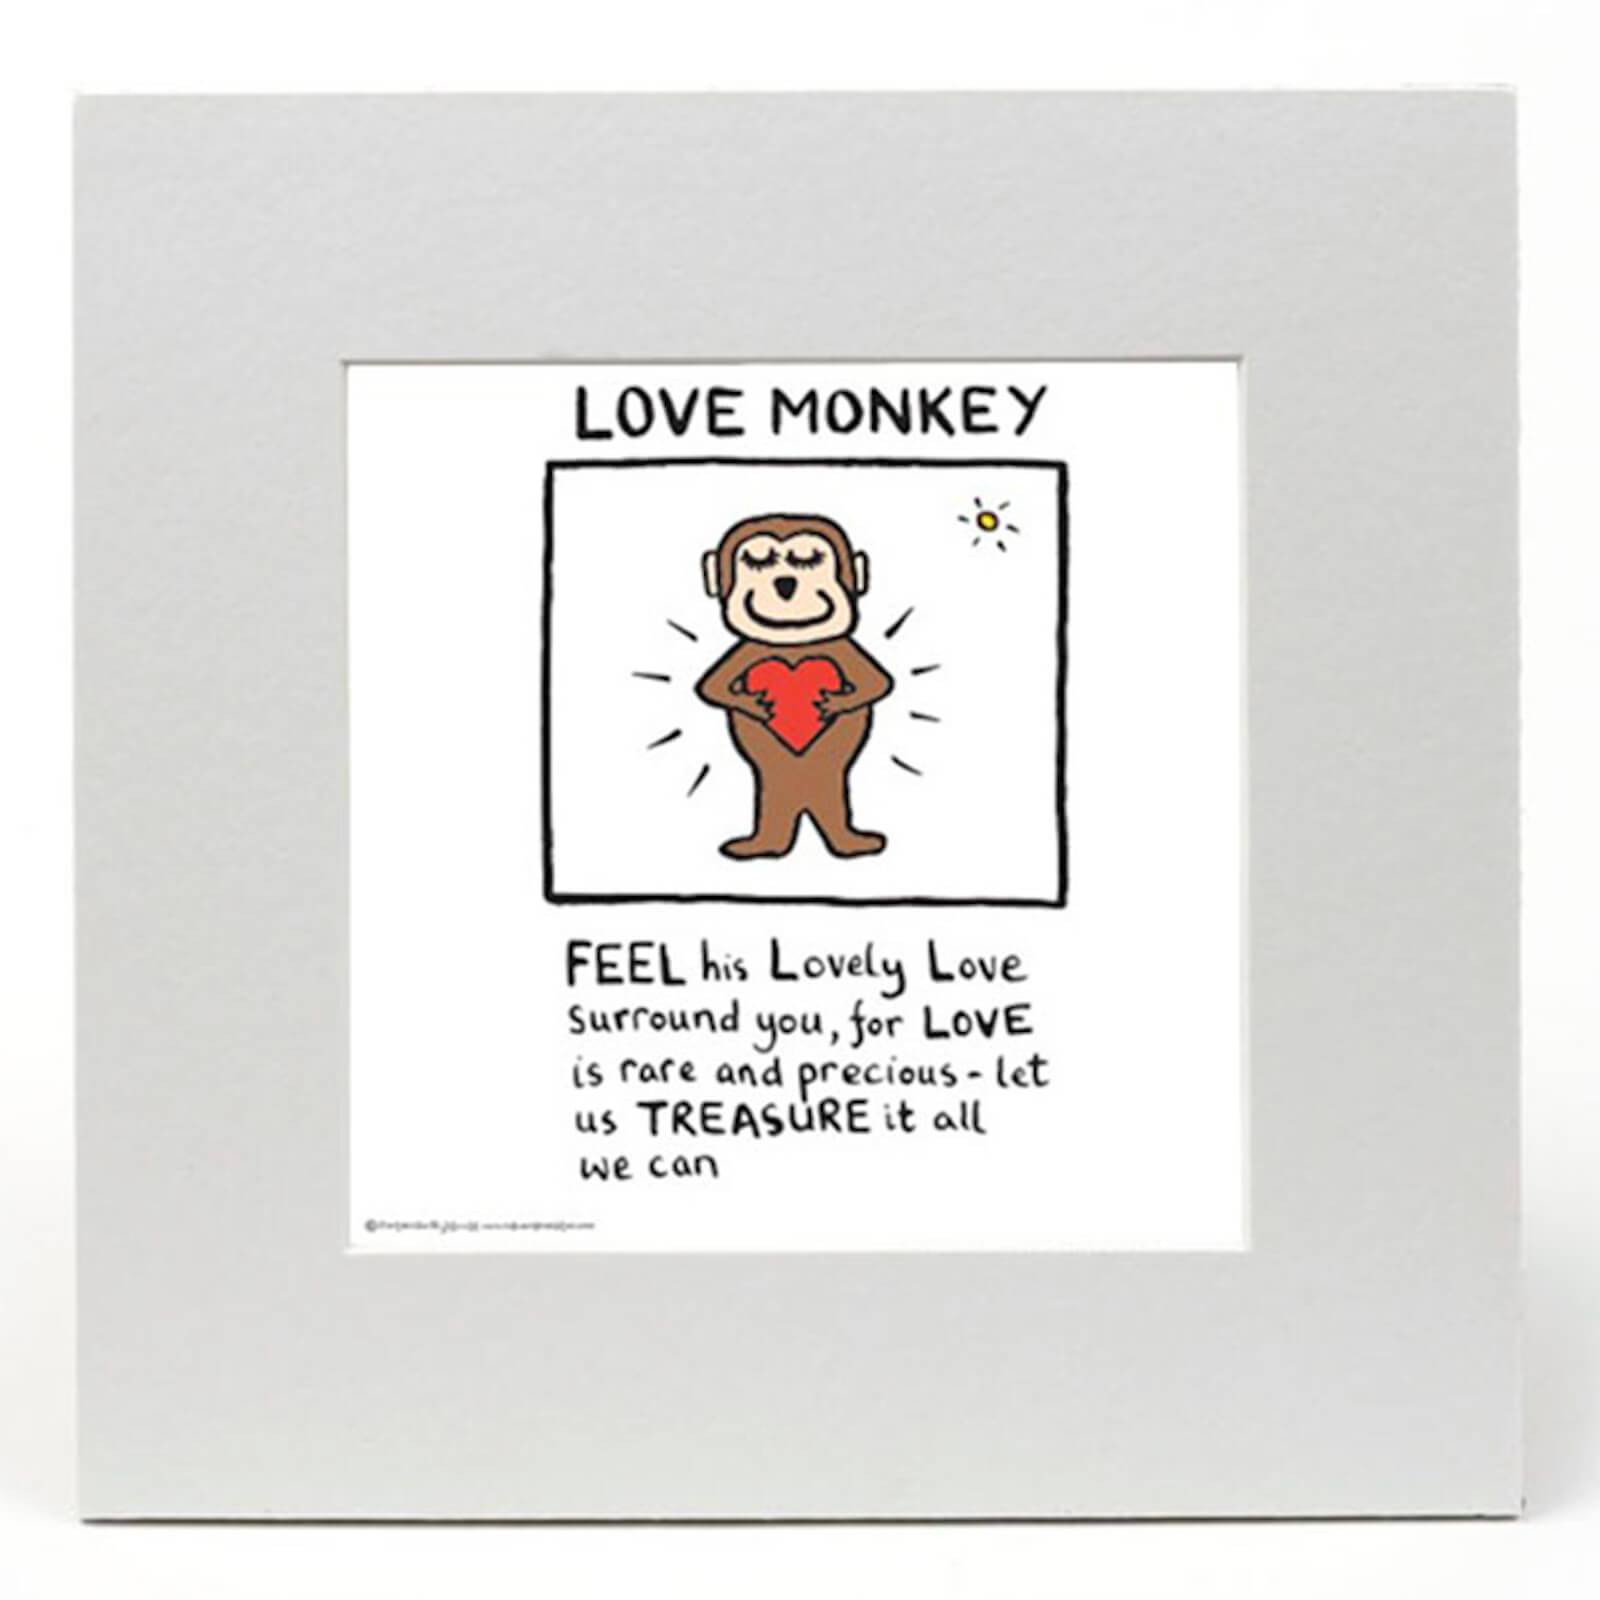 Edward Monkton Love Monkey by Edward Monkton